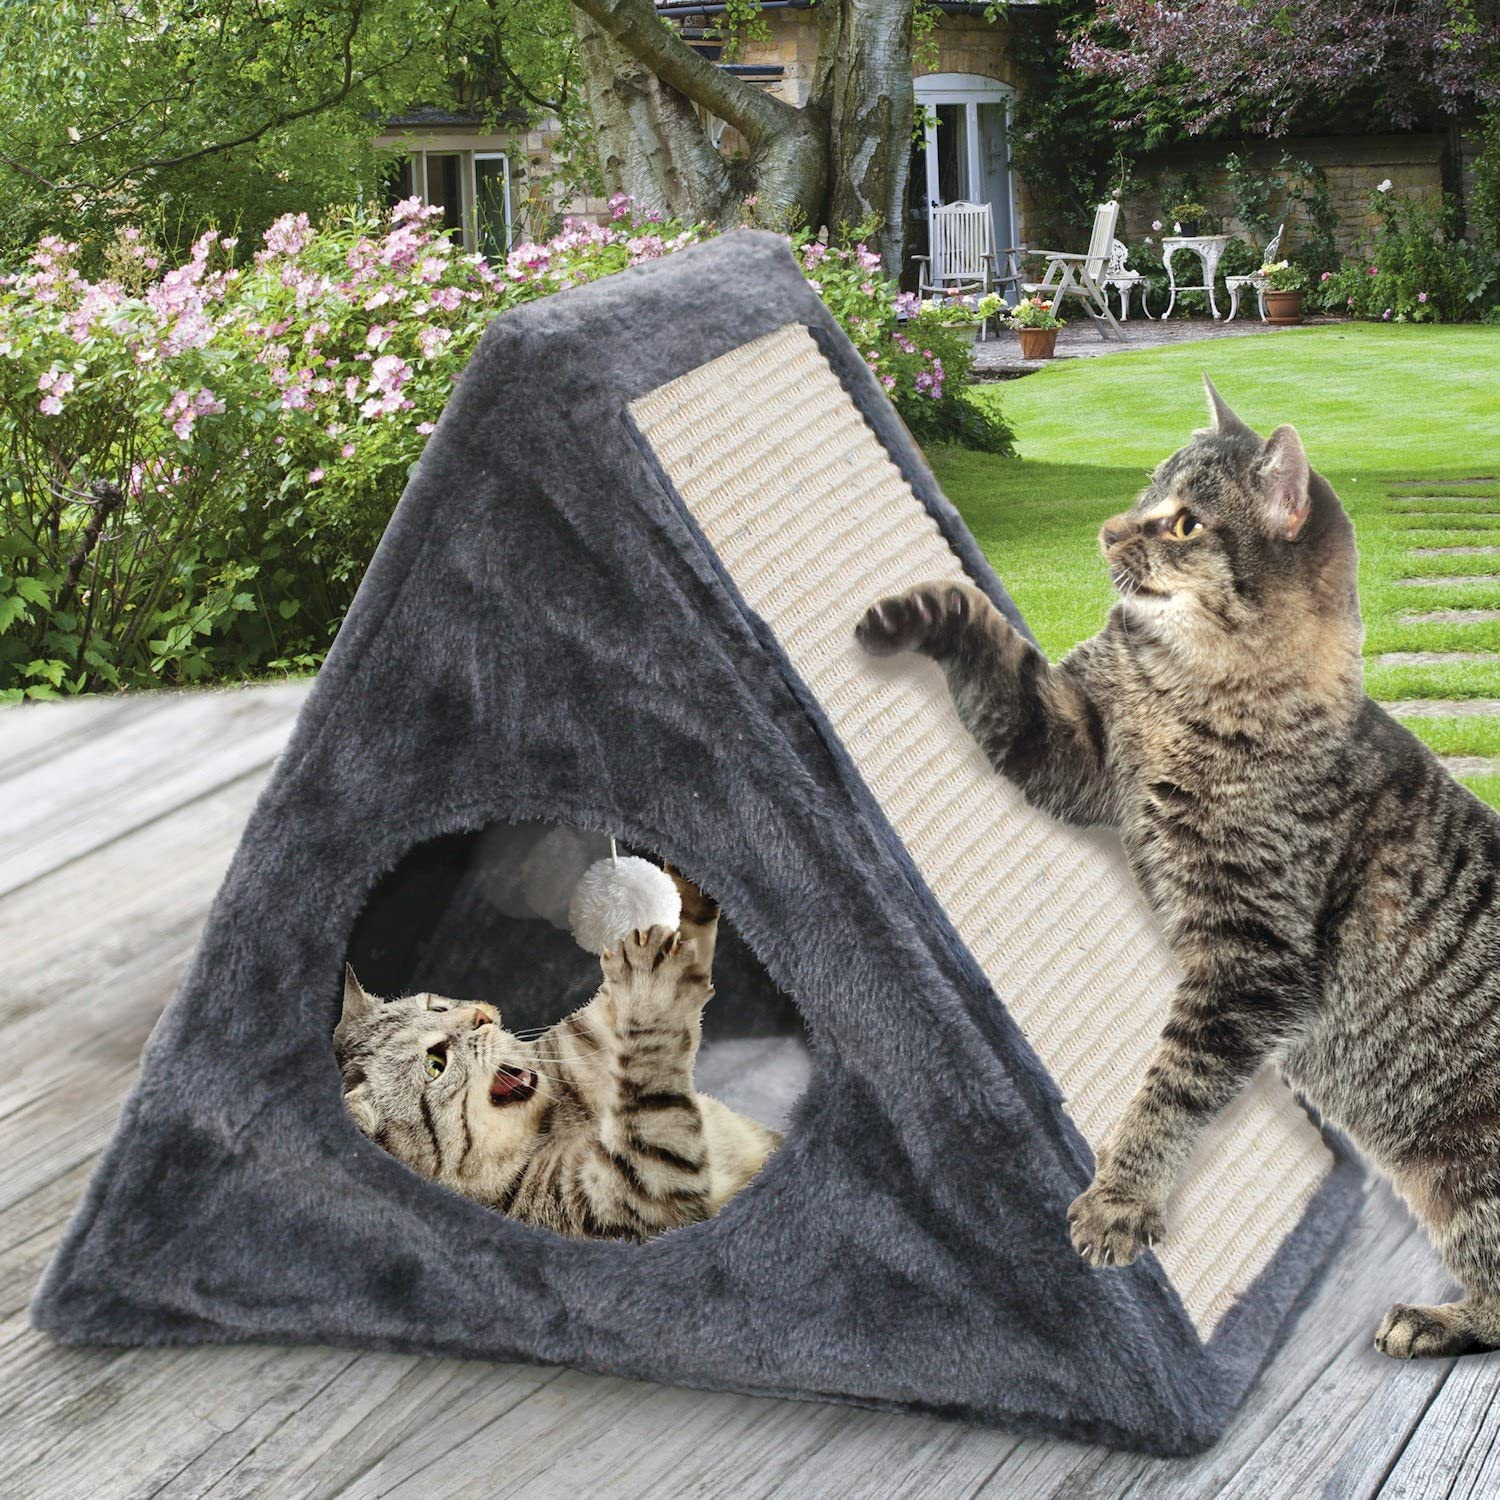 Etna Indoor Outdoor Foldable Cat Condo  Collapsible Plush Feline Habitat with Builtin Scratch Pad and Hanging Ball Toy